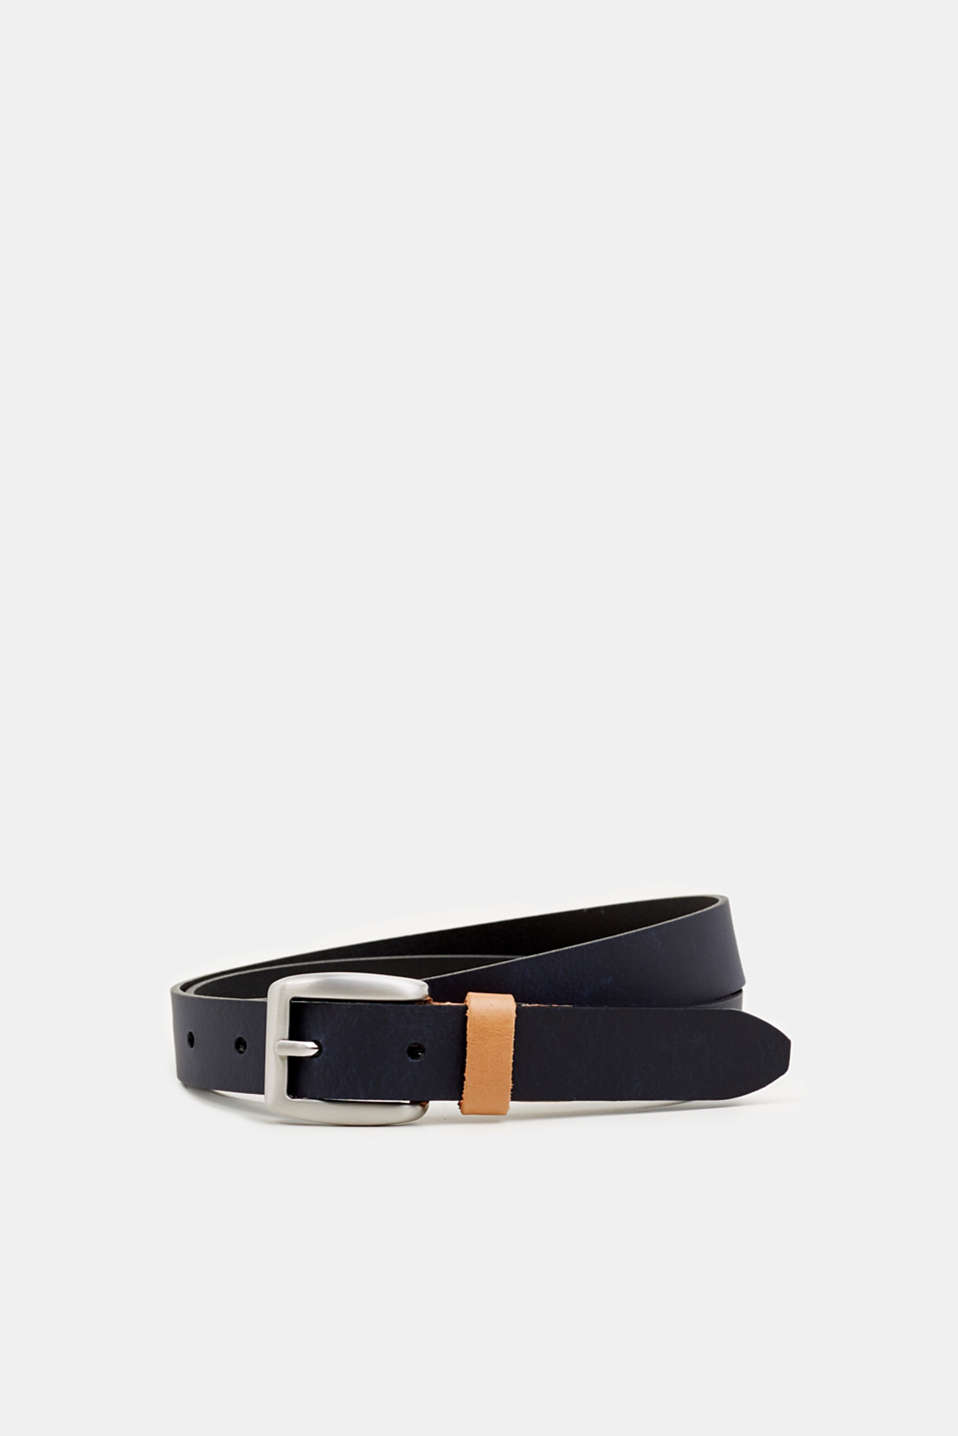 Susie T. range: cowhide leather belt, NAVY, detail image number 0